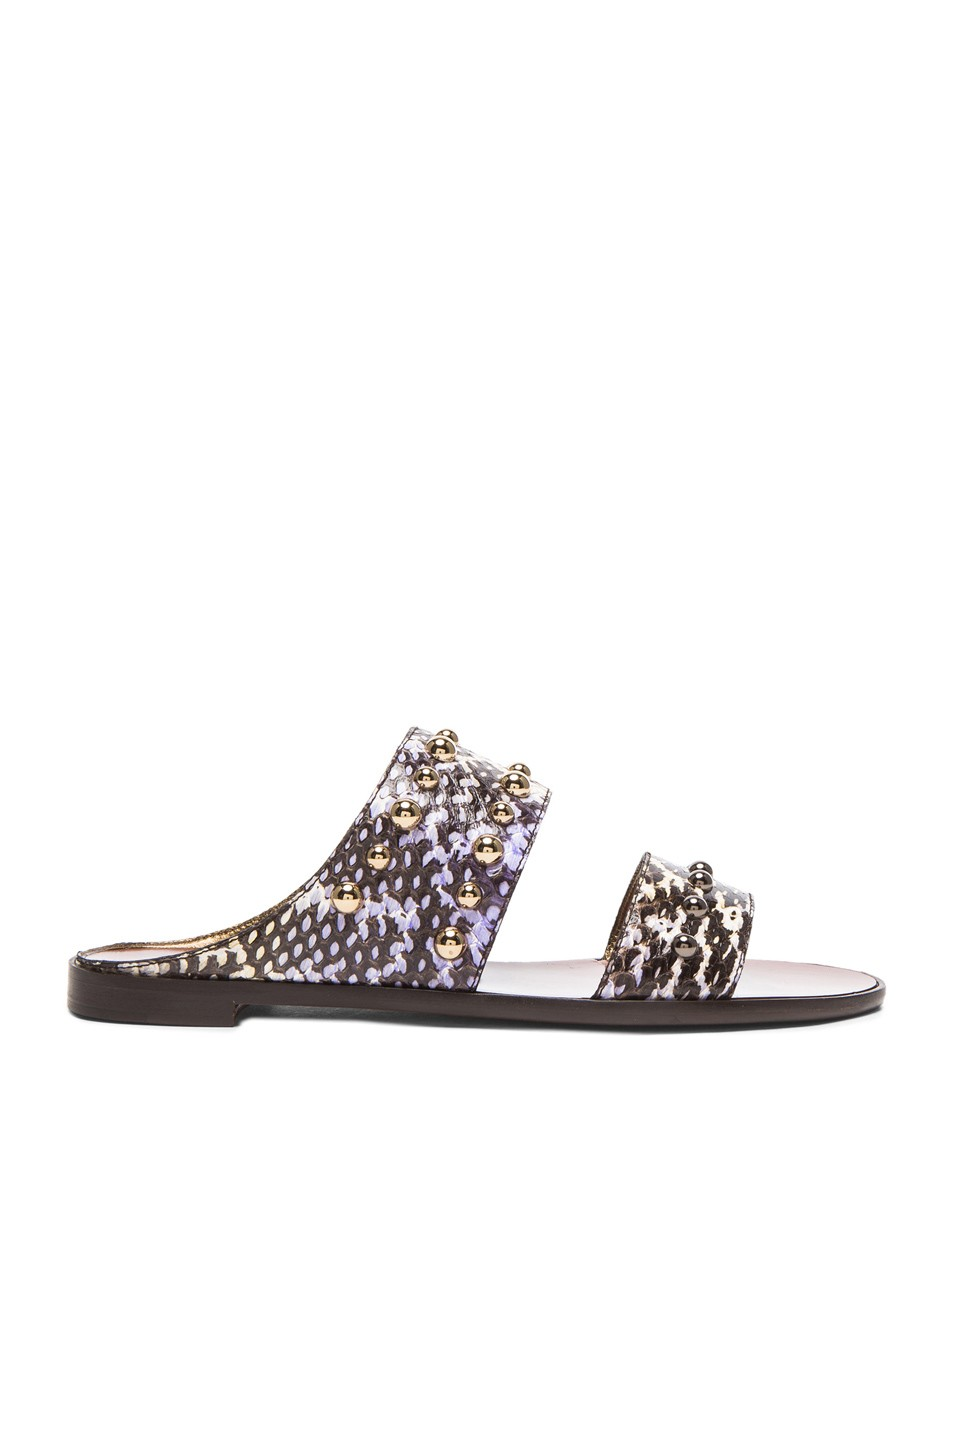 Snakeskin Flat Sandals with Studs